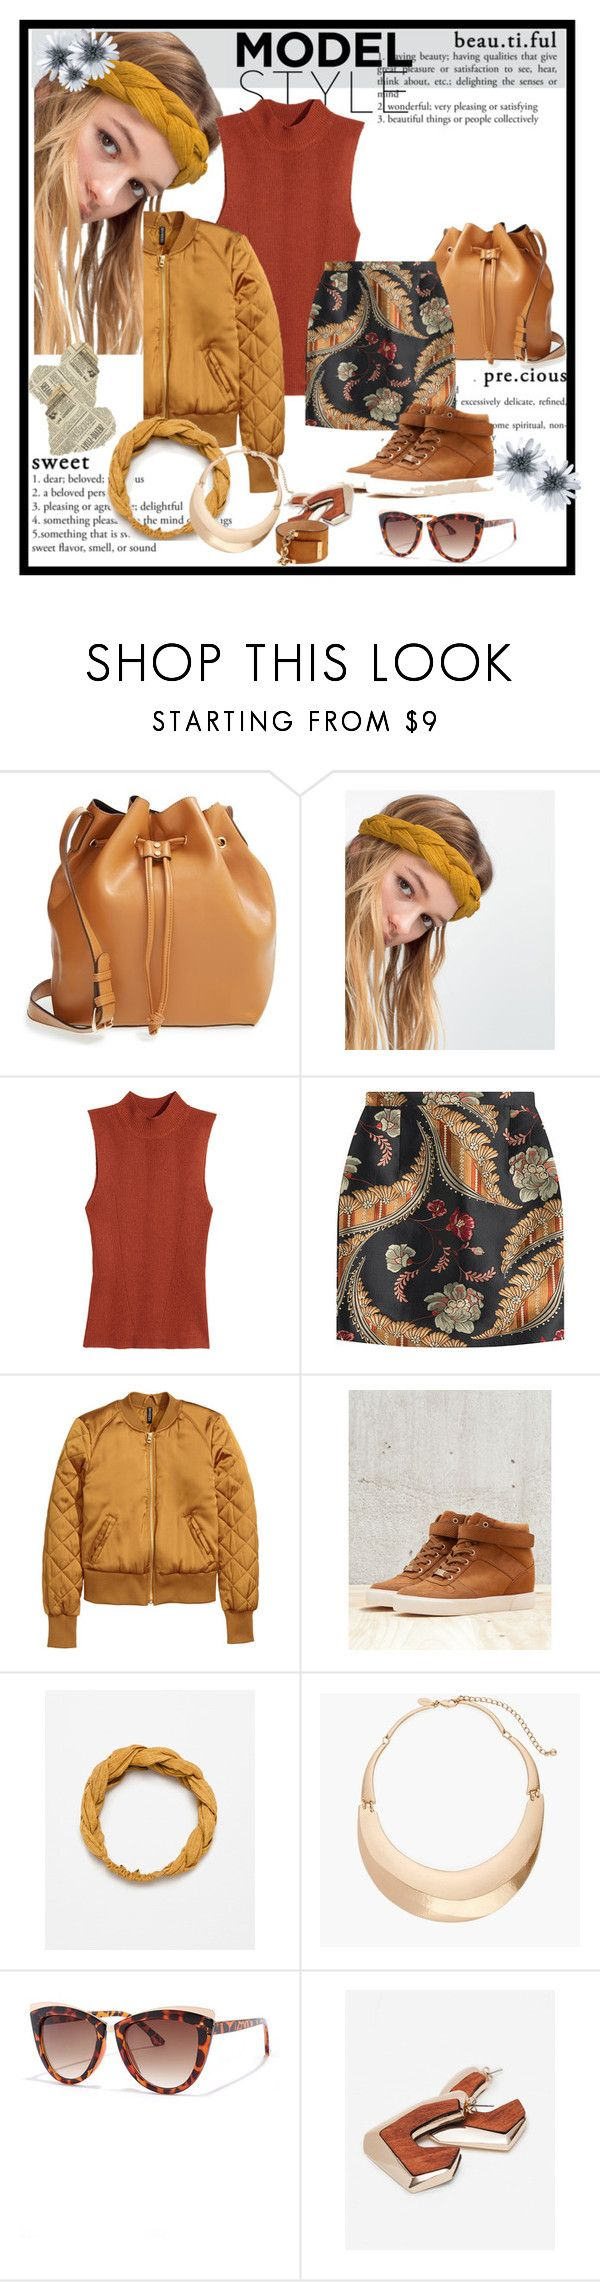 """Untitled #276"" by vasso960 ❤ liked on Polyvore featuring Sole Society, Zara, H&M, Dsquared2, Bershka, Chico's and LULUS"